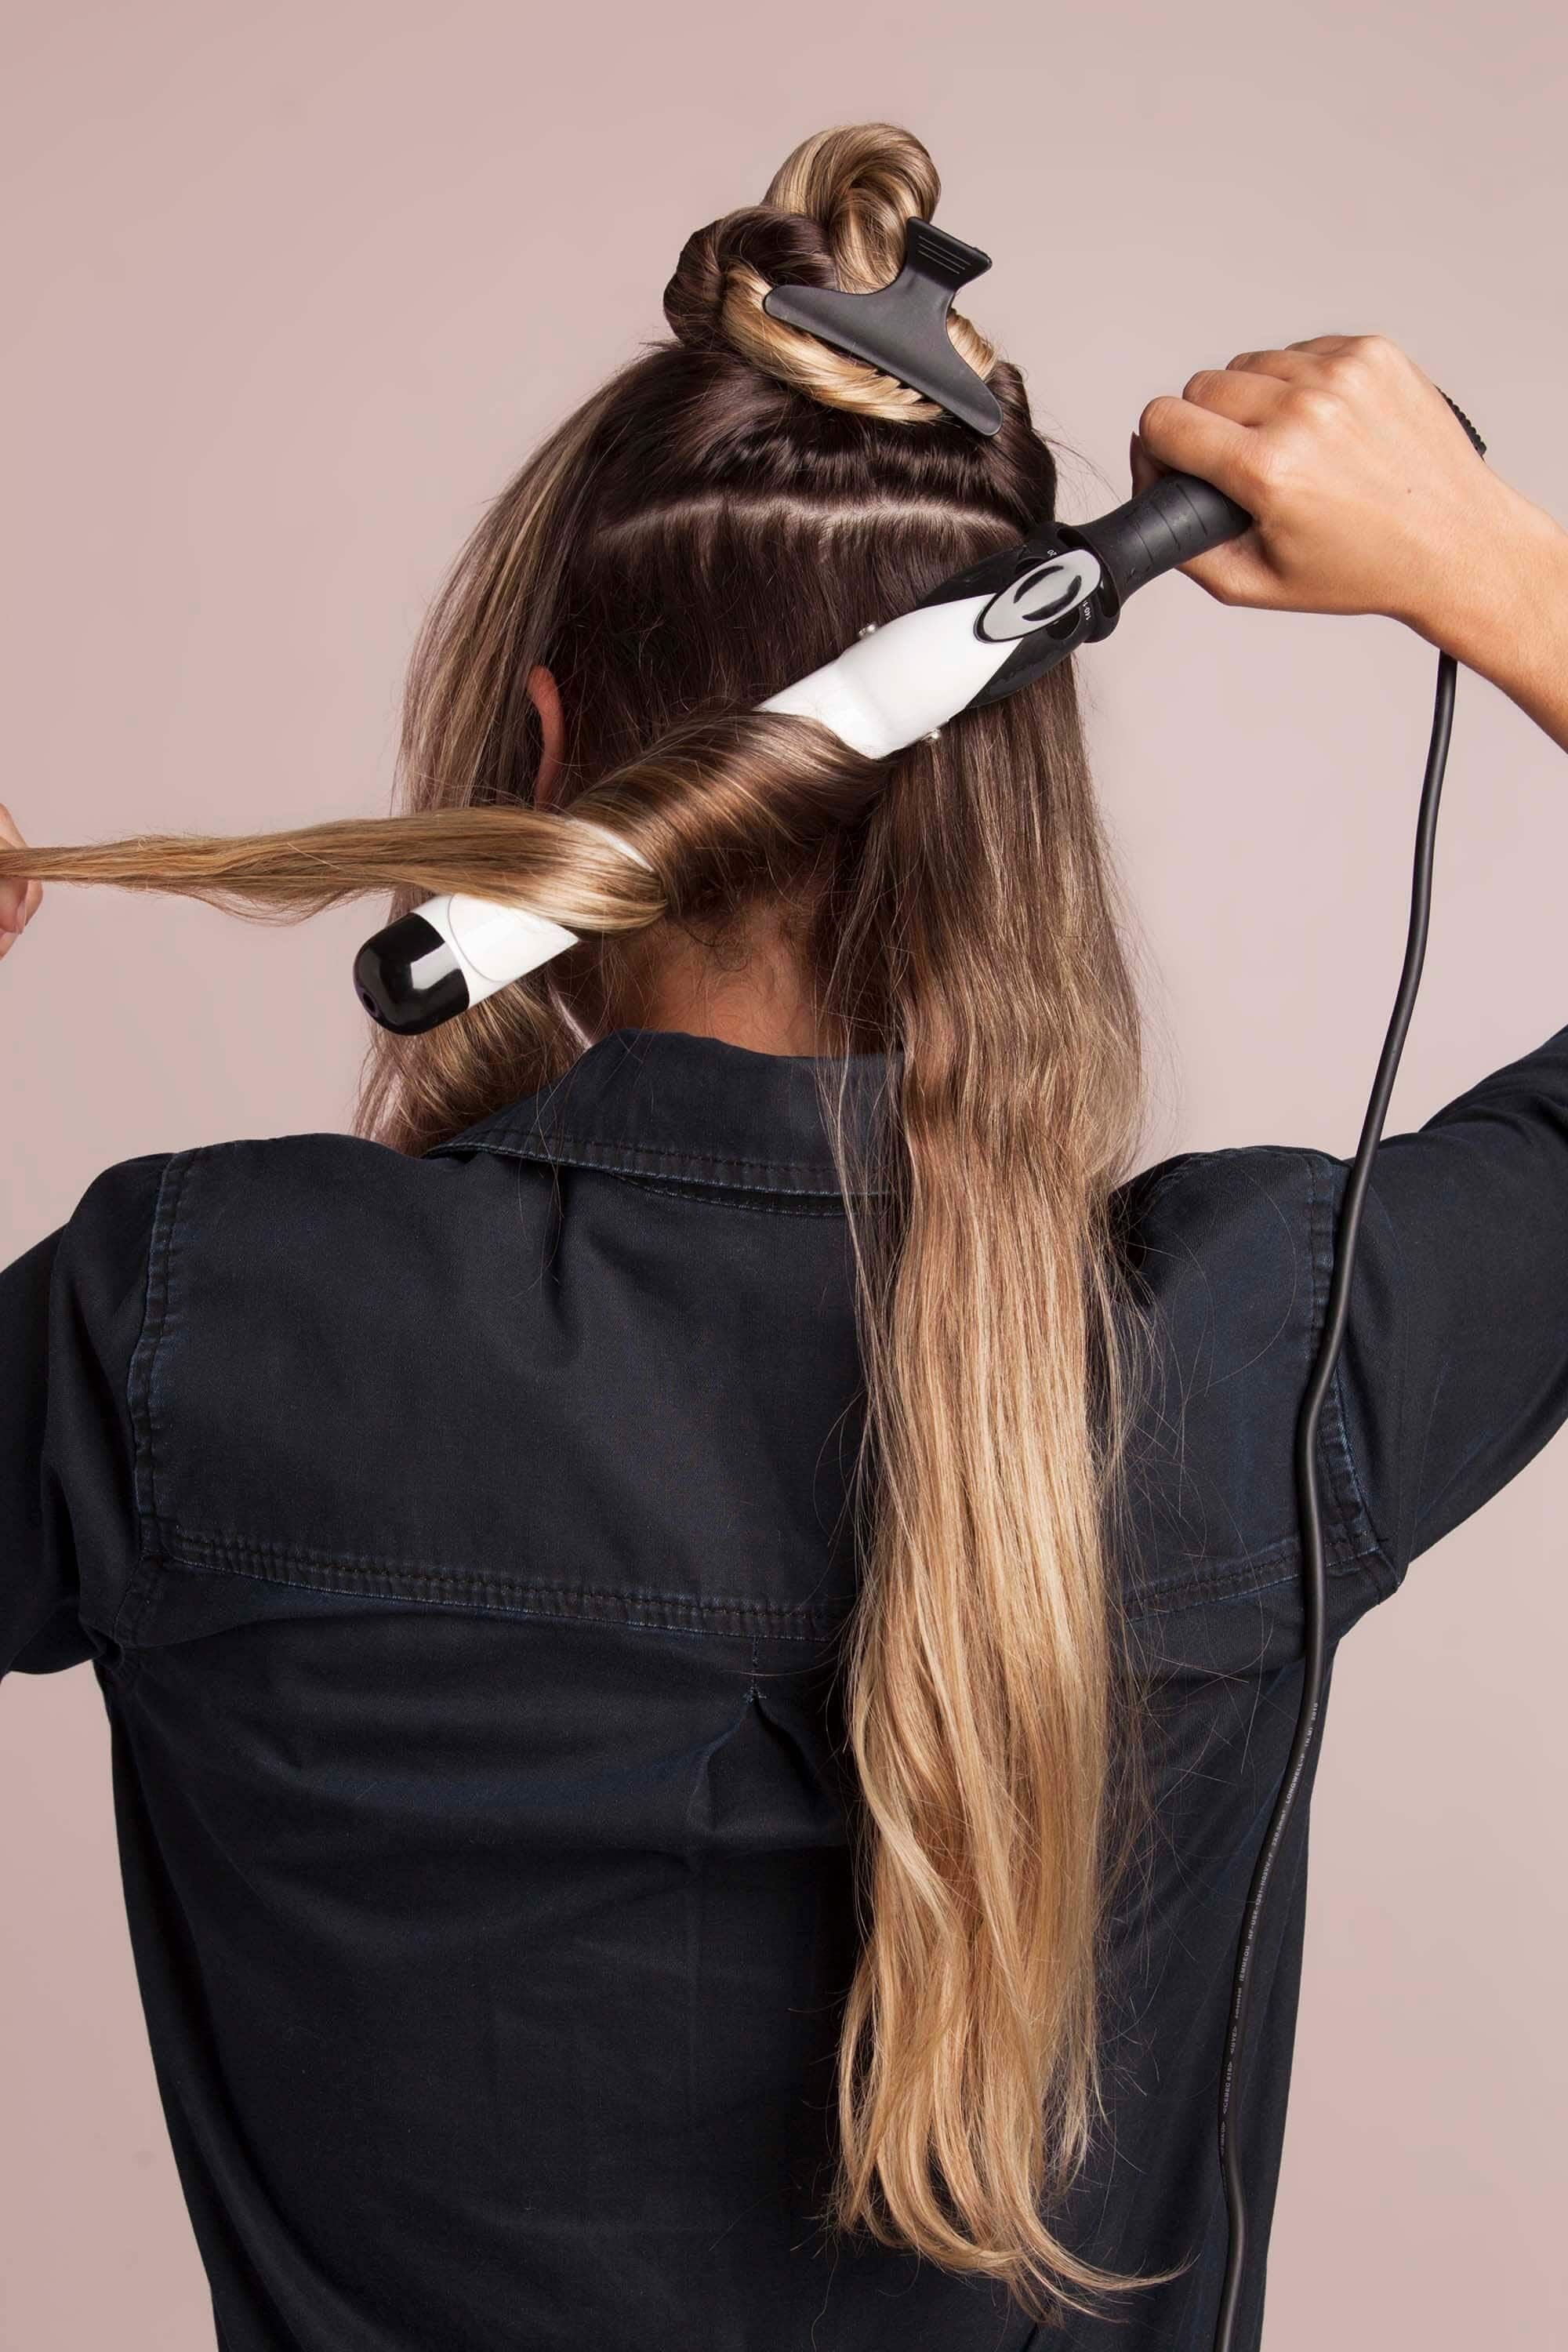 A stepbystep guide on how to use a curling iron on long